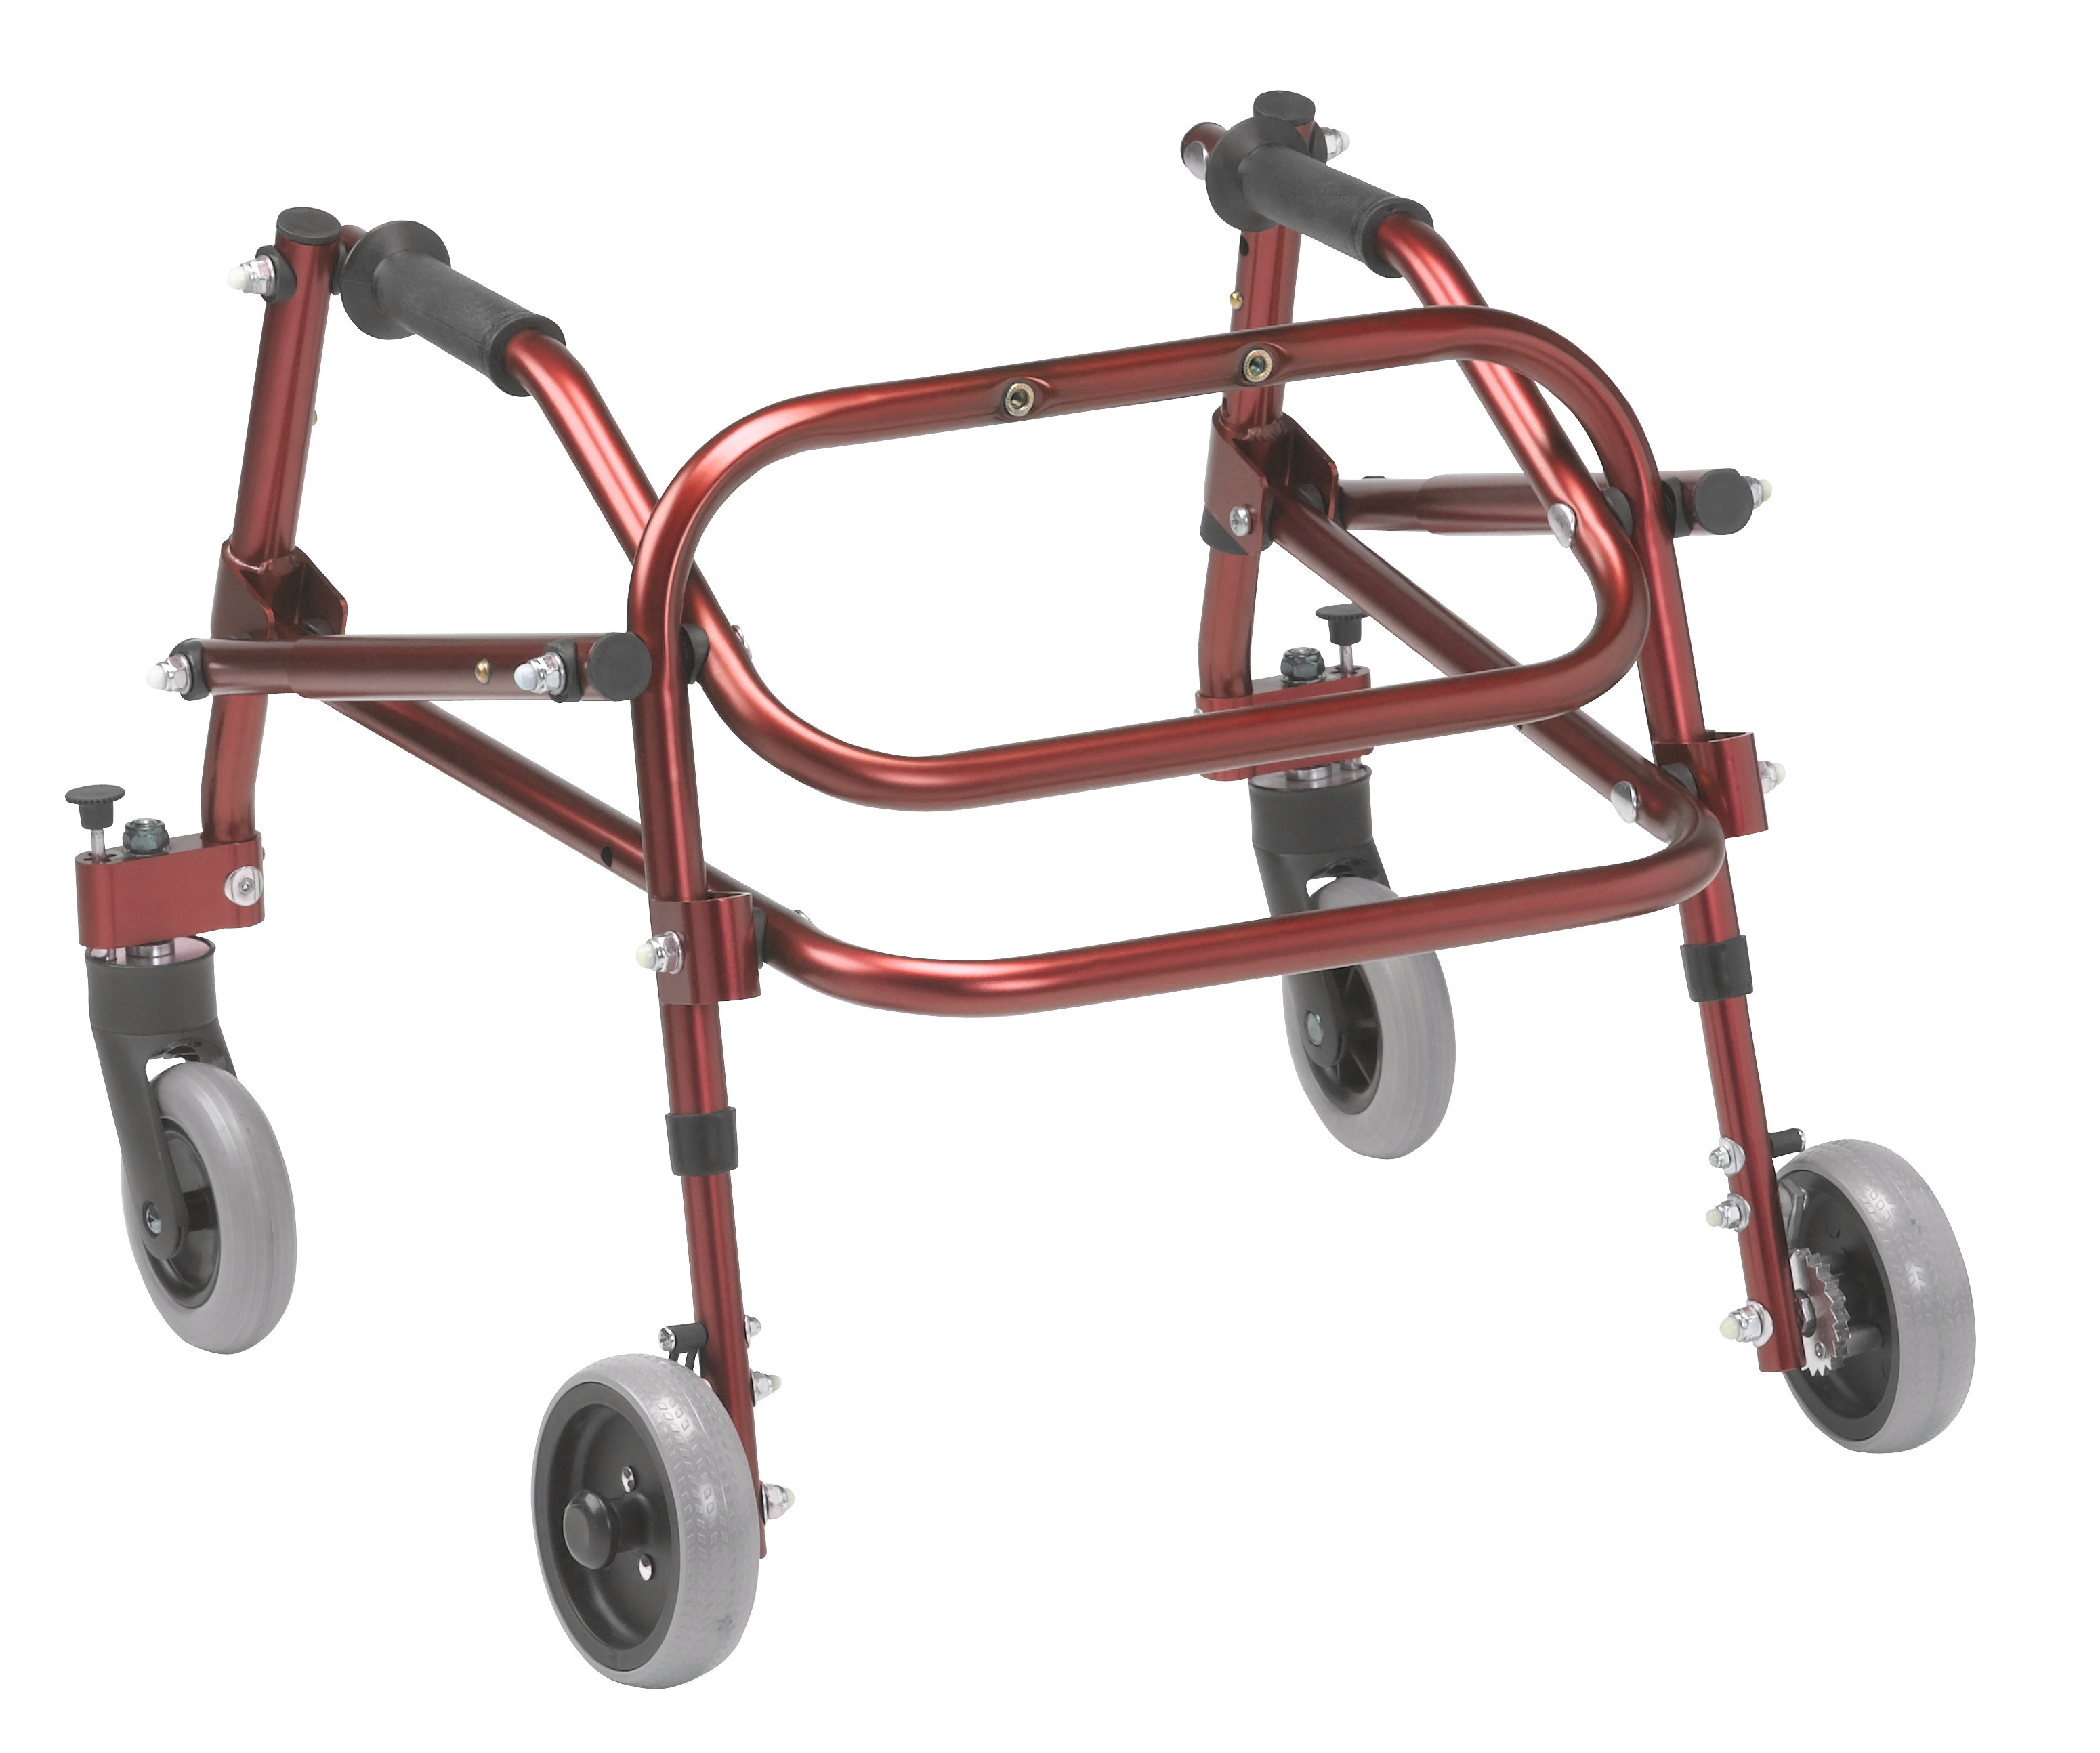 Nimbo 2G Lightweight Posterior Walker - Large - Castle Red - Angle View